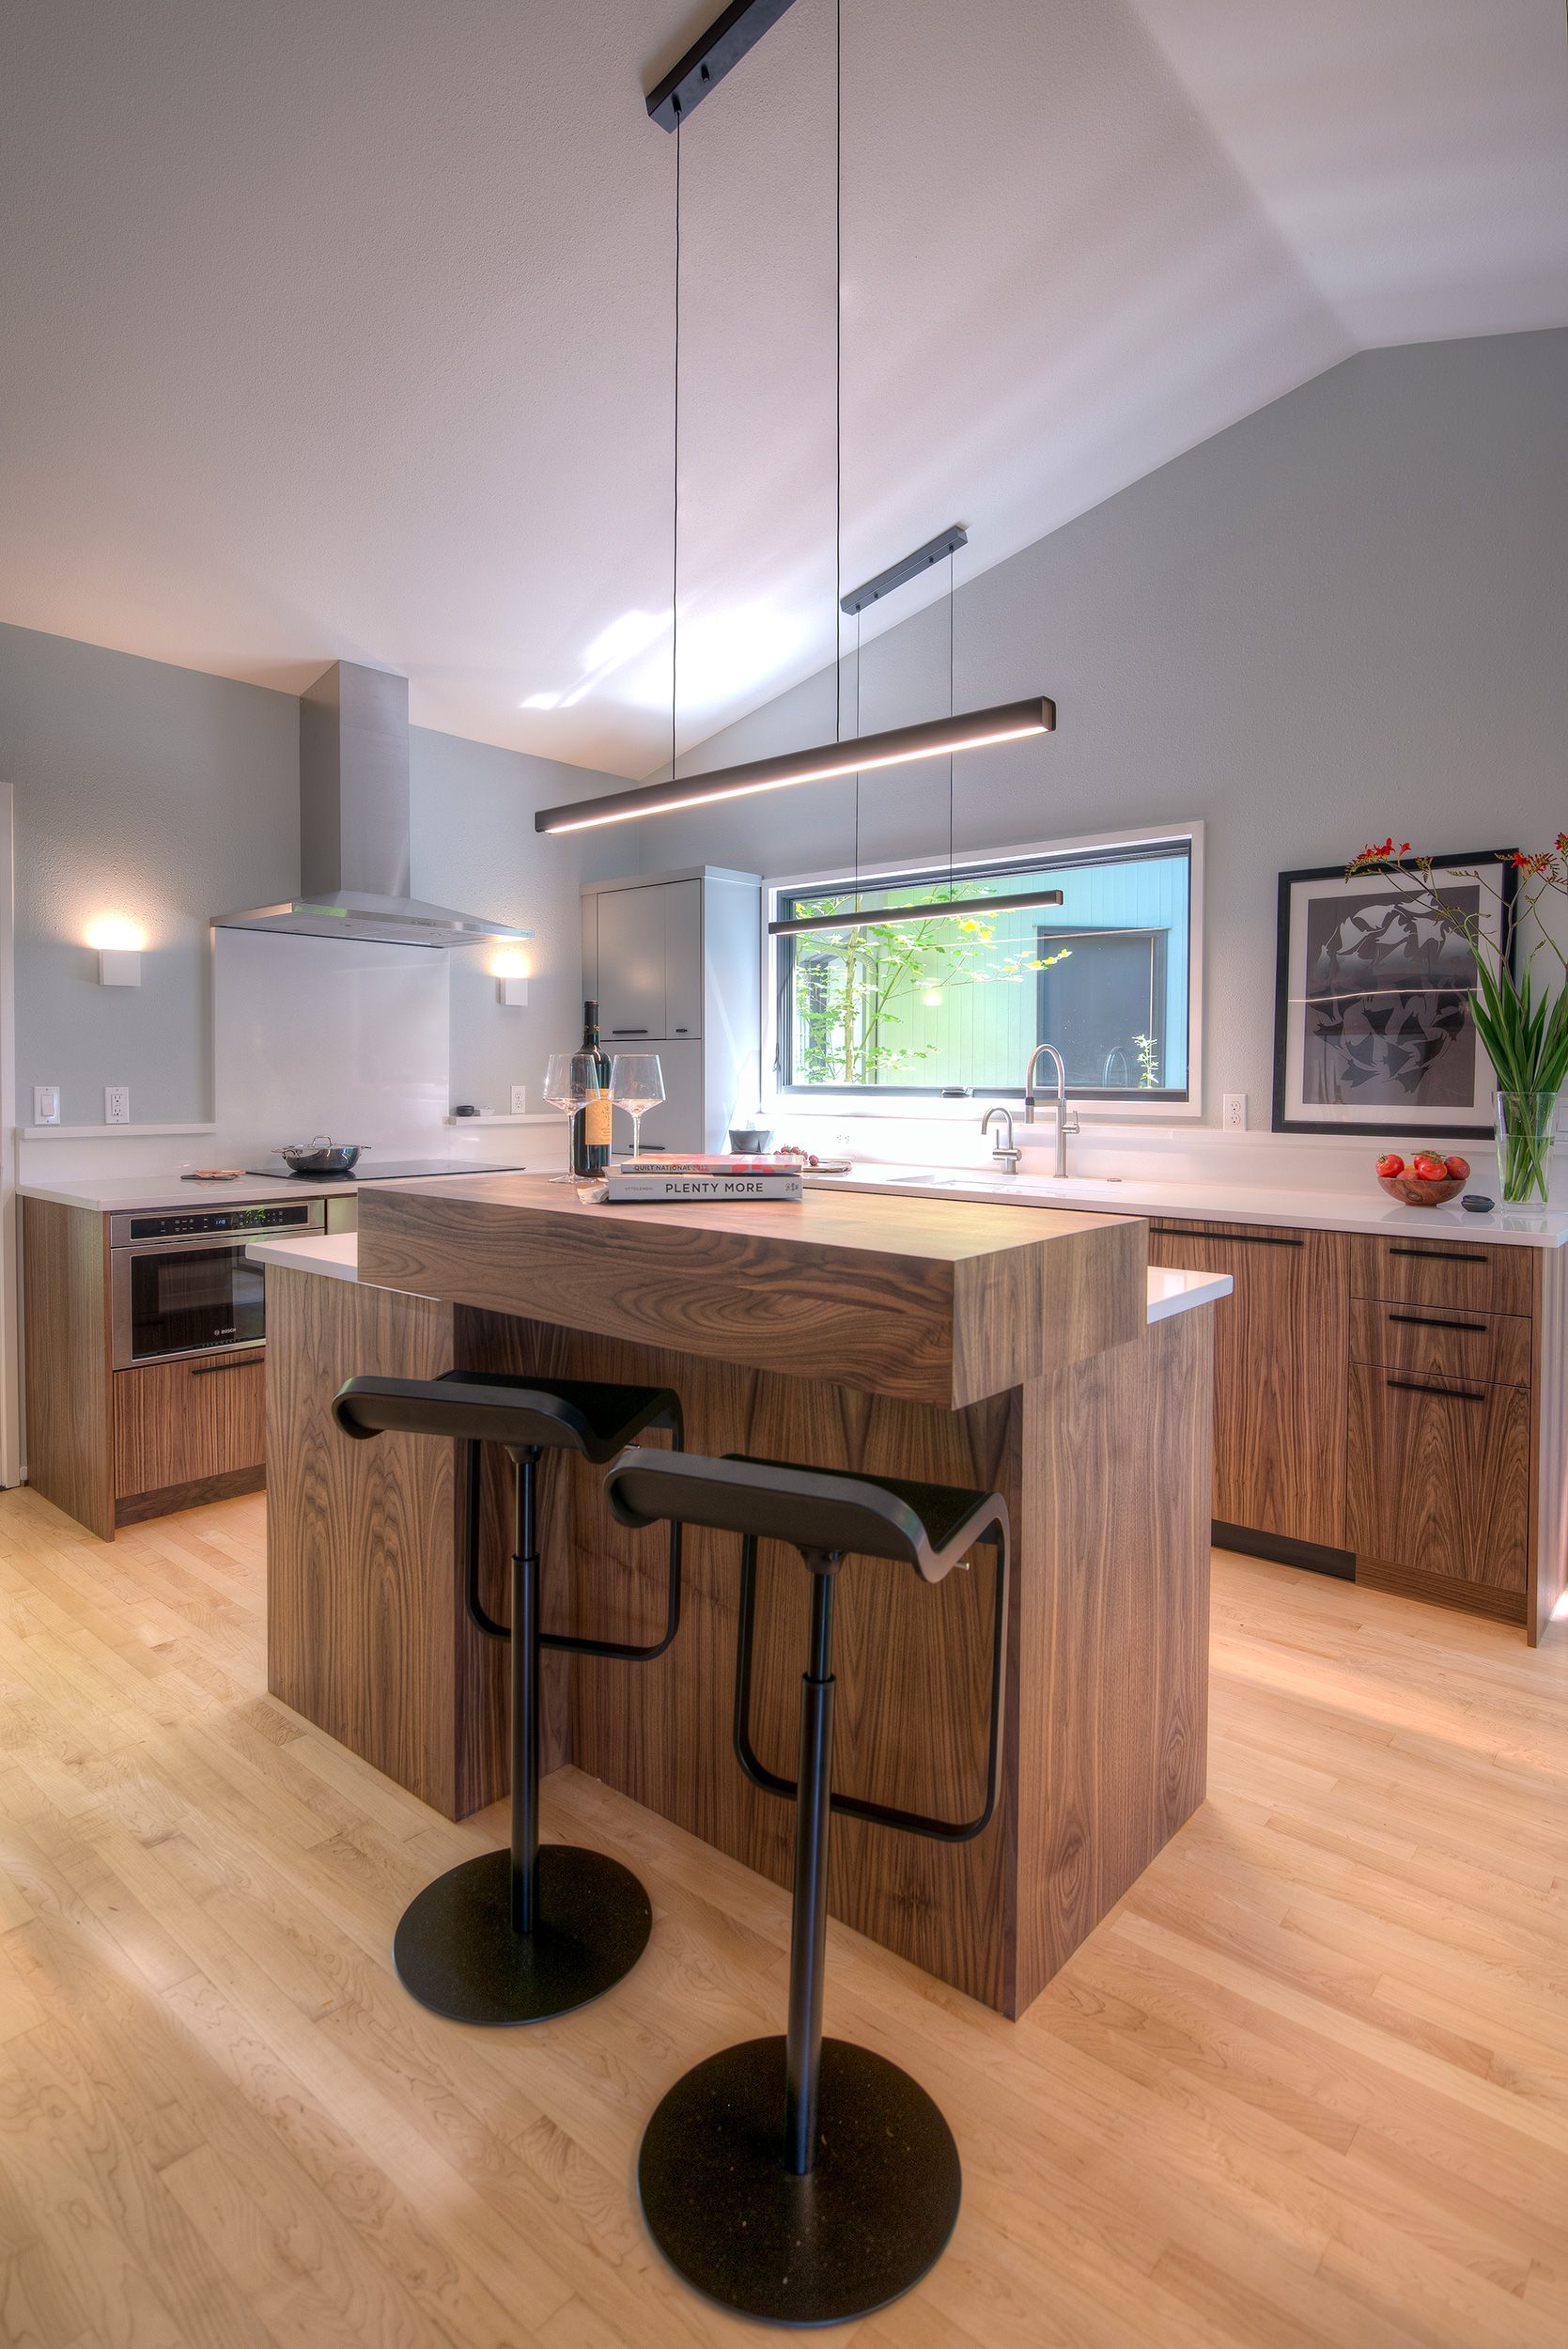 The Updated Kitchen Designed And Built In Collaboration With Dyer Studio In This Modern Portland Home Fsc Certified Walnut Updated Kitchen Maple Floors Home